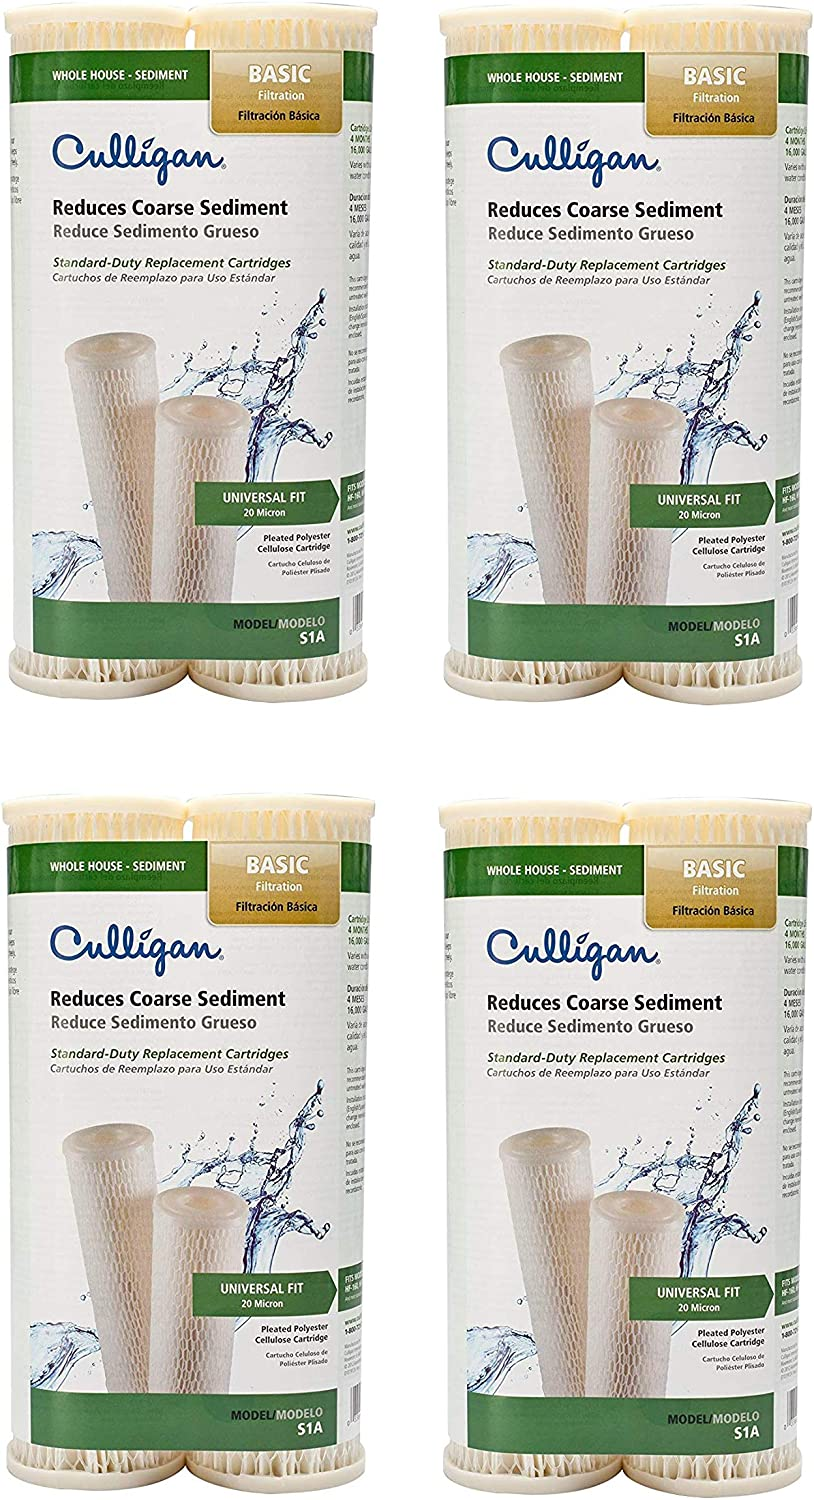 Culligan S1A Whole House Standard Water Filter, 16,000 Gallons, 4 Pack: Home & Kitchen